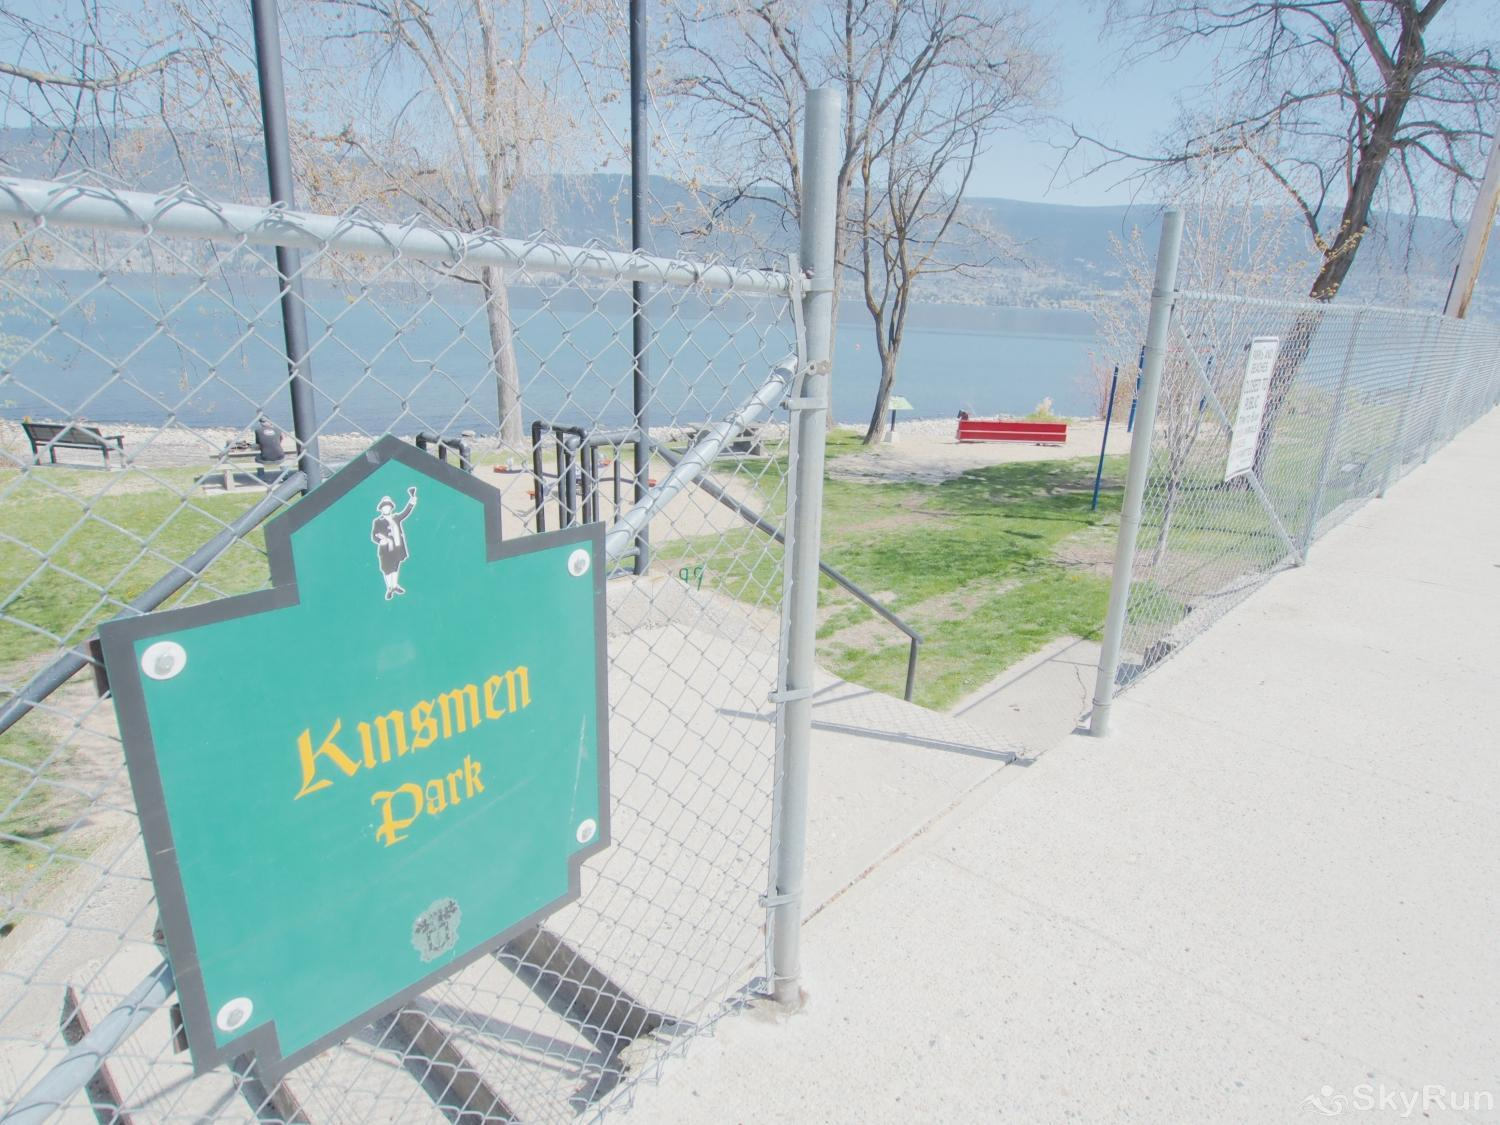 Old Summerland 1 bedroom suite Less than a 10 minute walk to this beach park